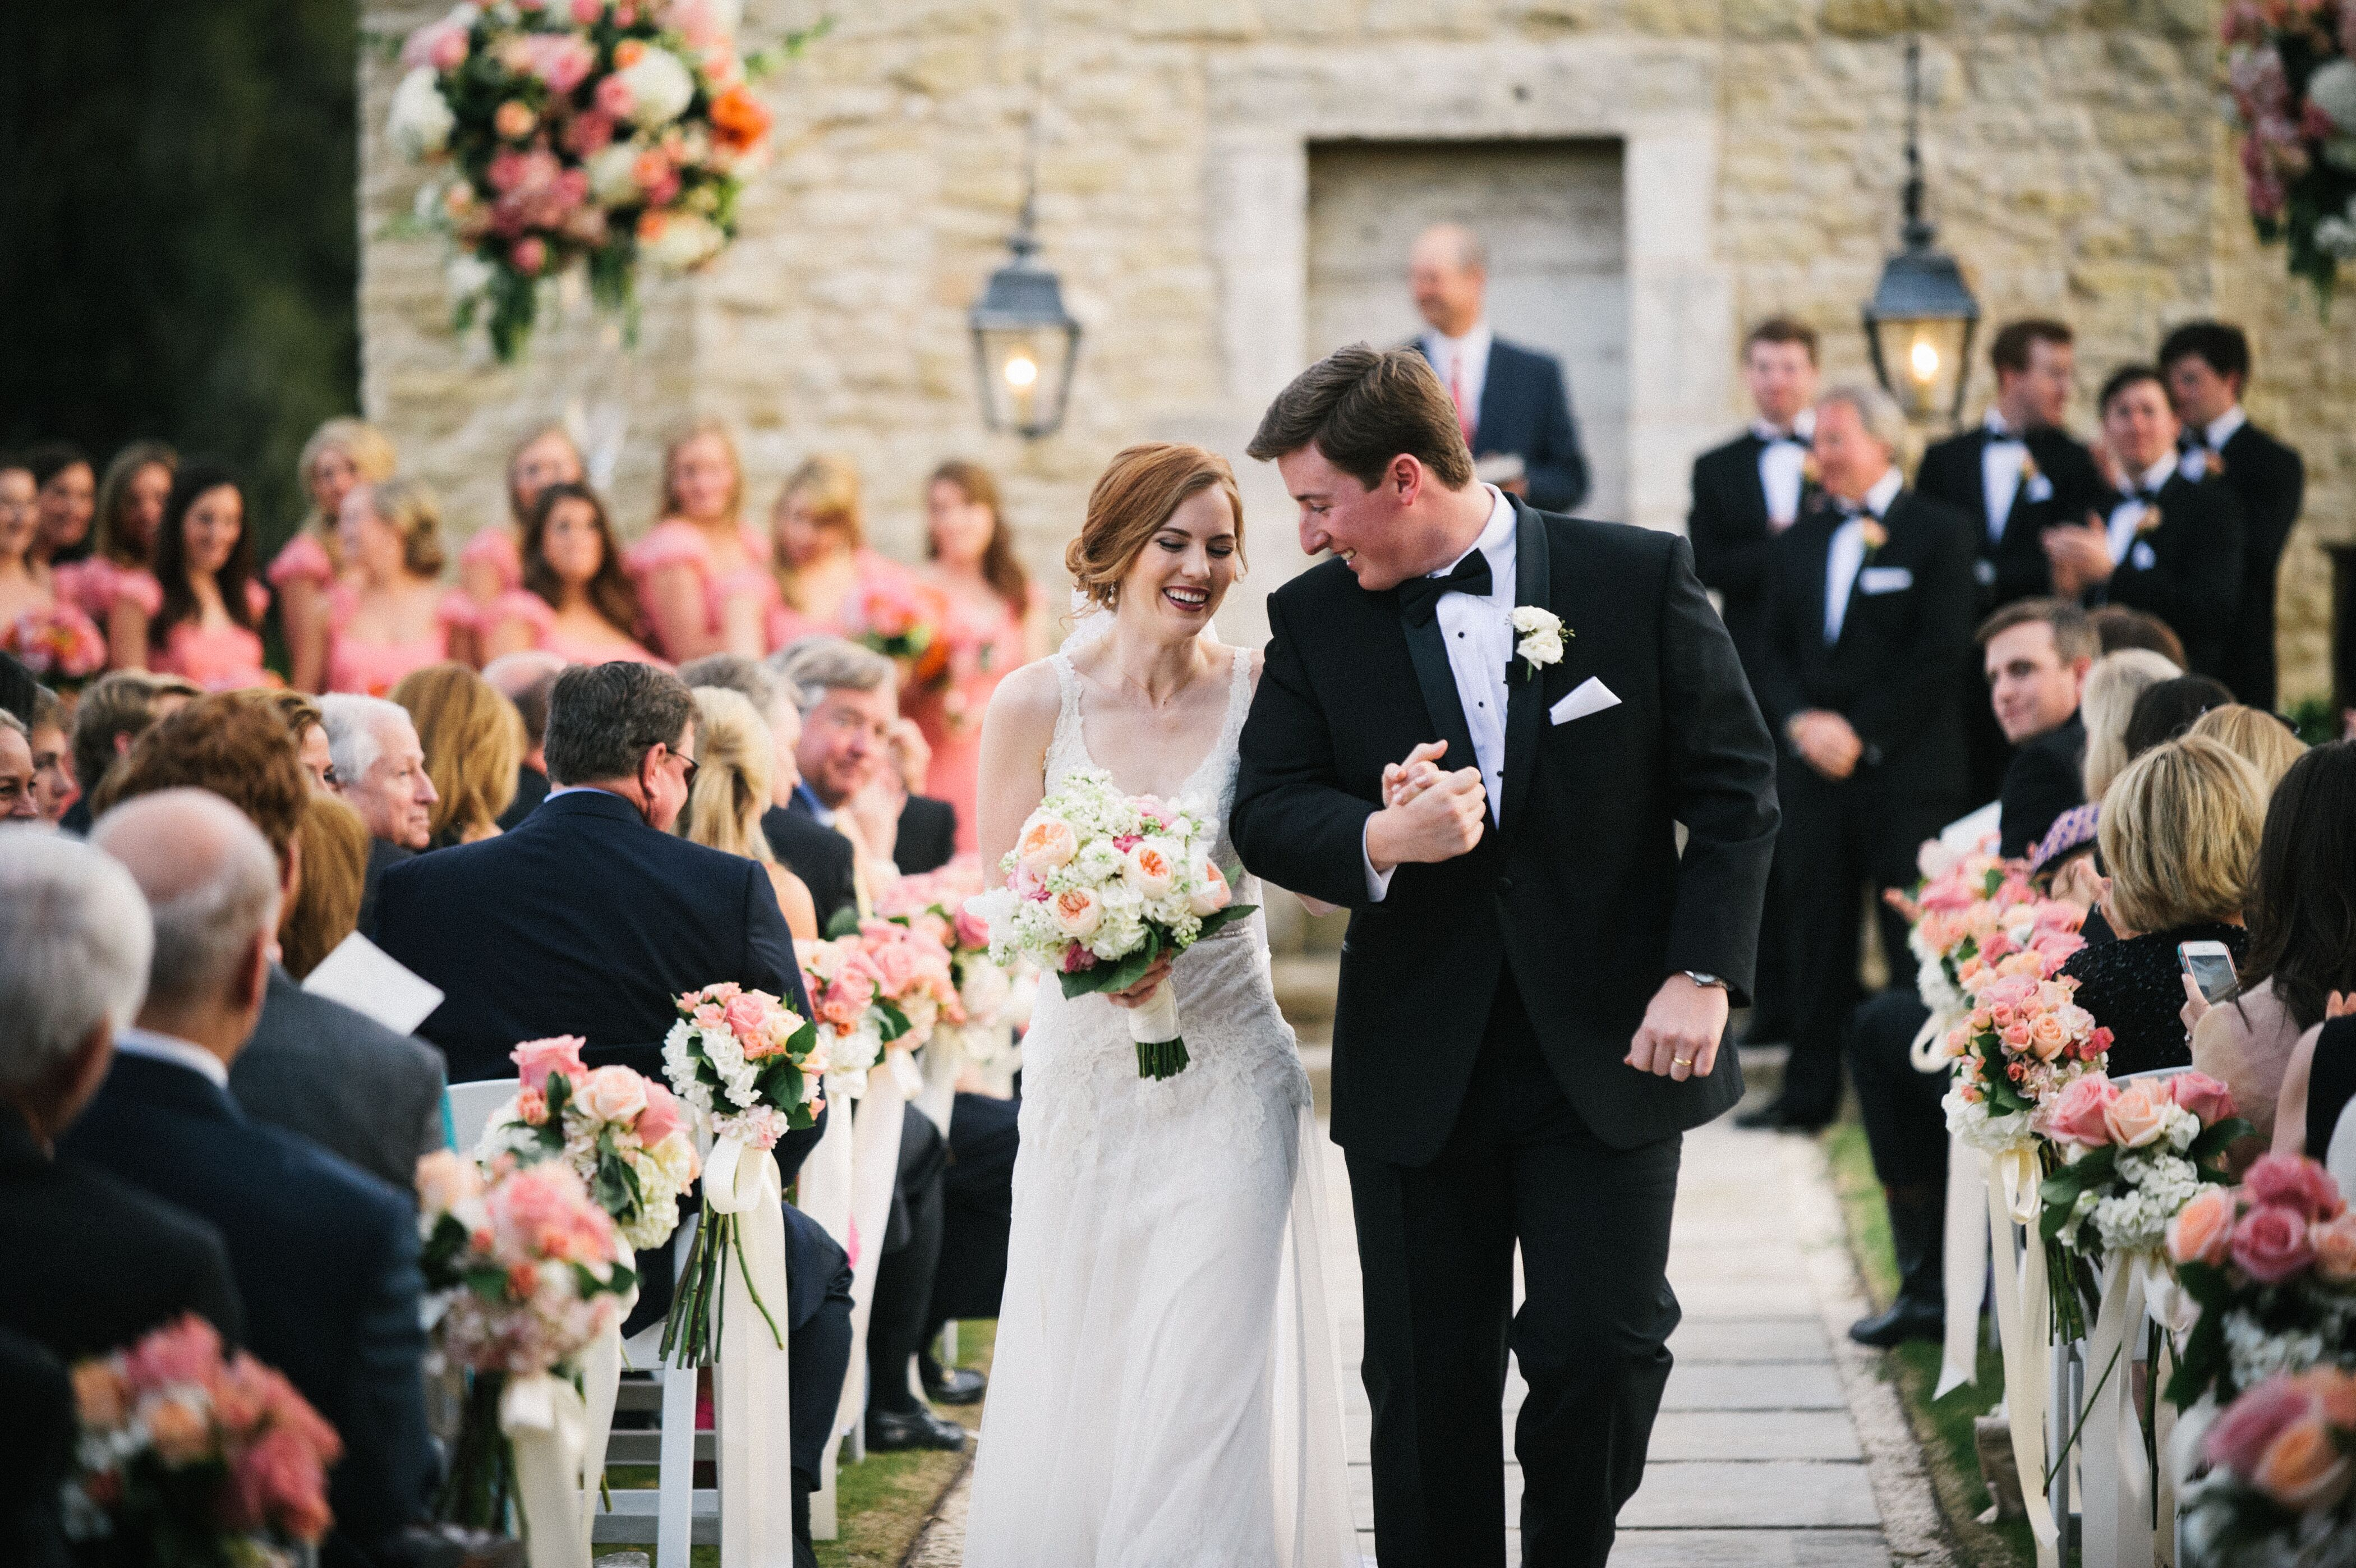 Outdoor Wedding At Houston Oaks Country Club: A Romantic Alfresco Wedding At Houston Oaks Country Club